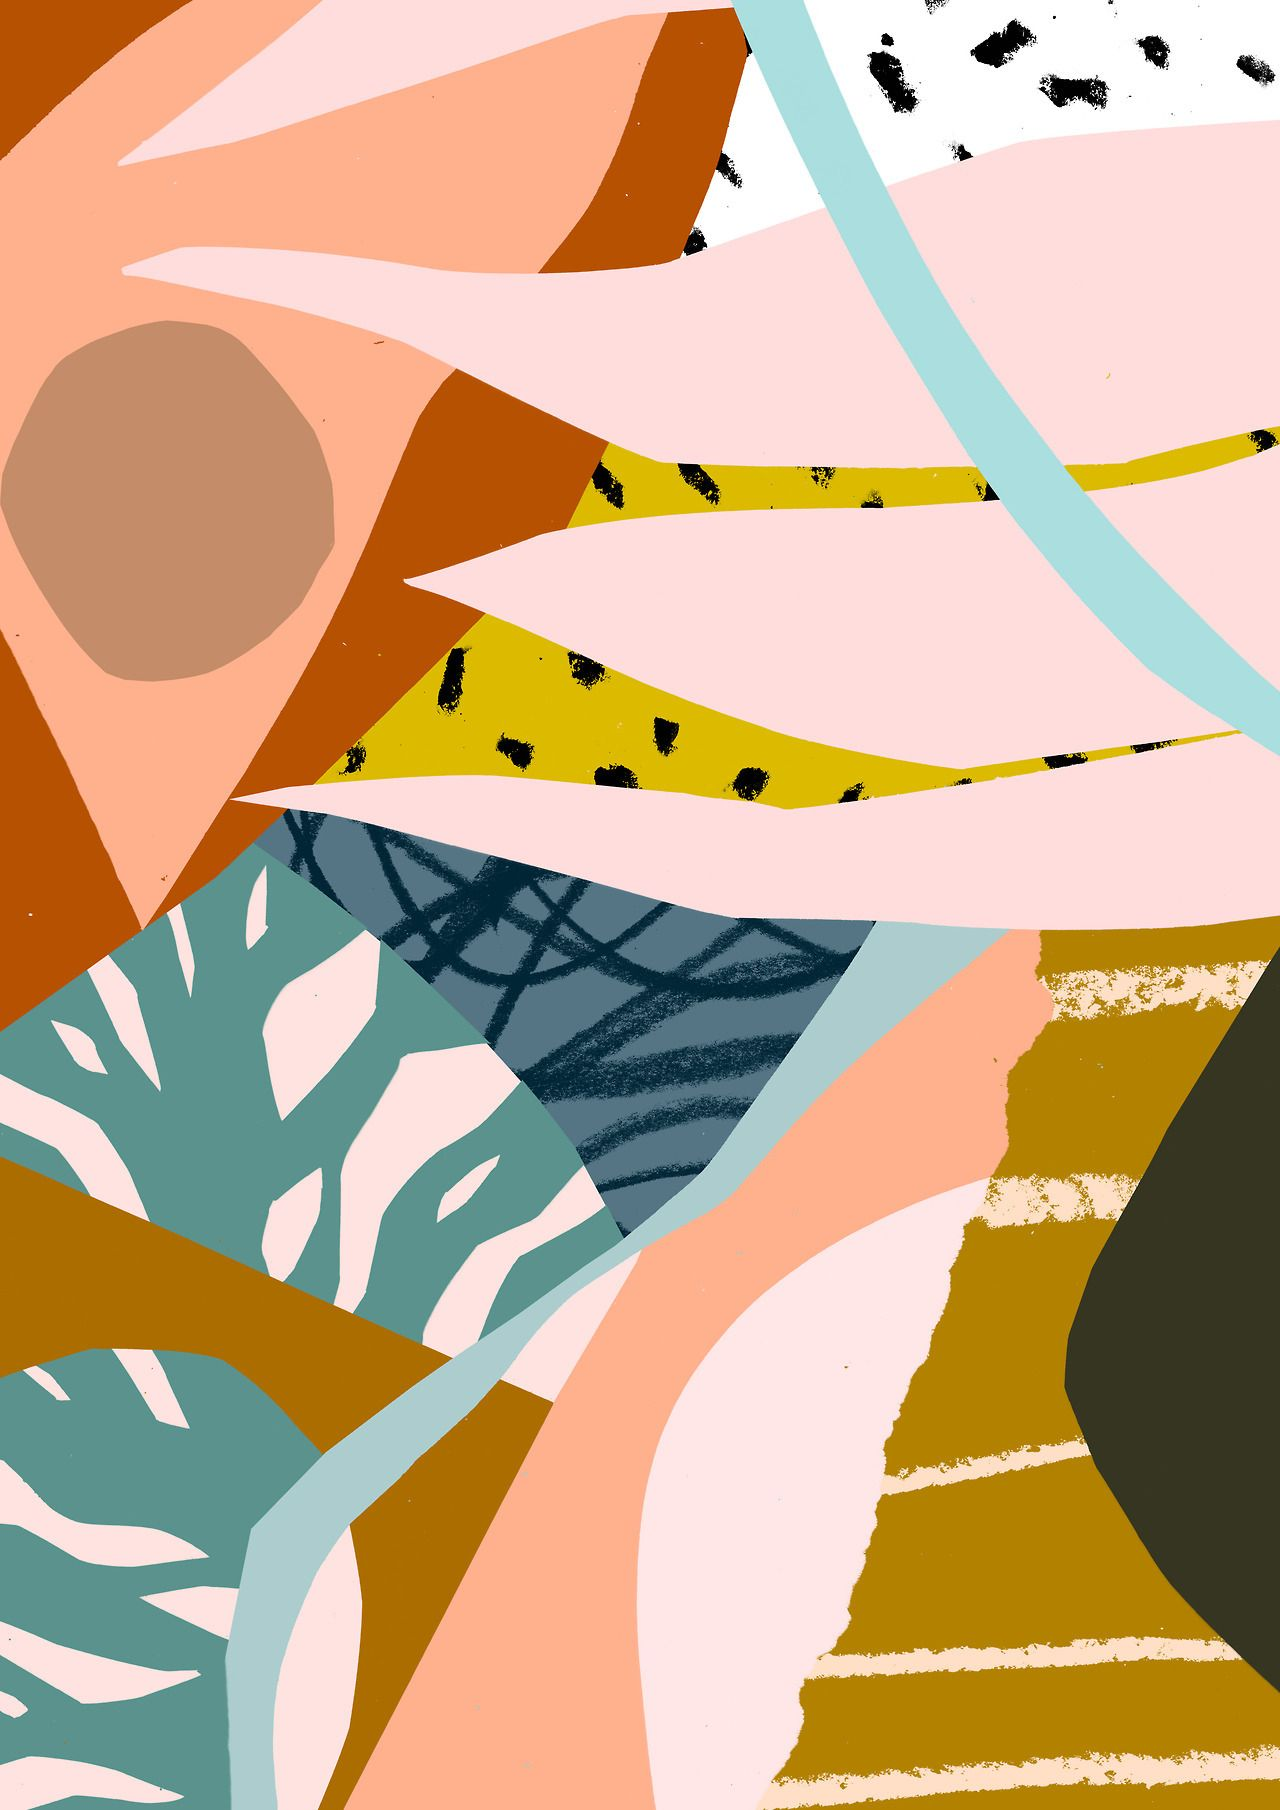 'Antiquity' www.tomabbisssmithart.com #abstract #art #surface #pattern #design #collage